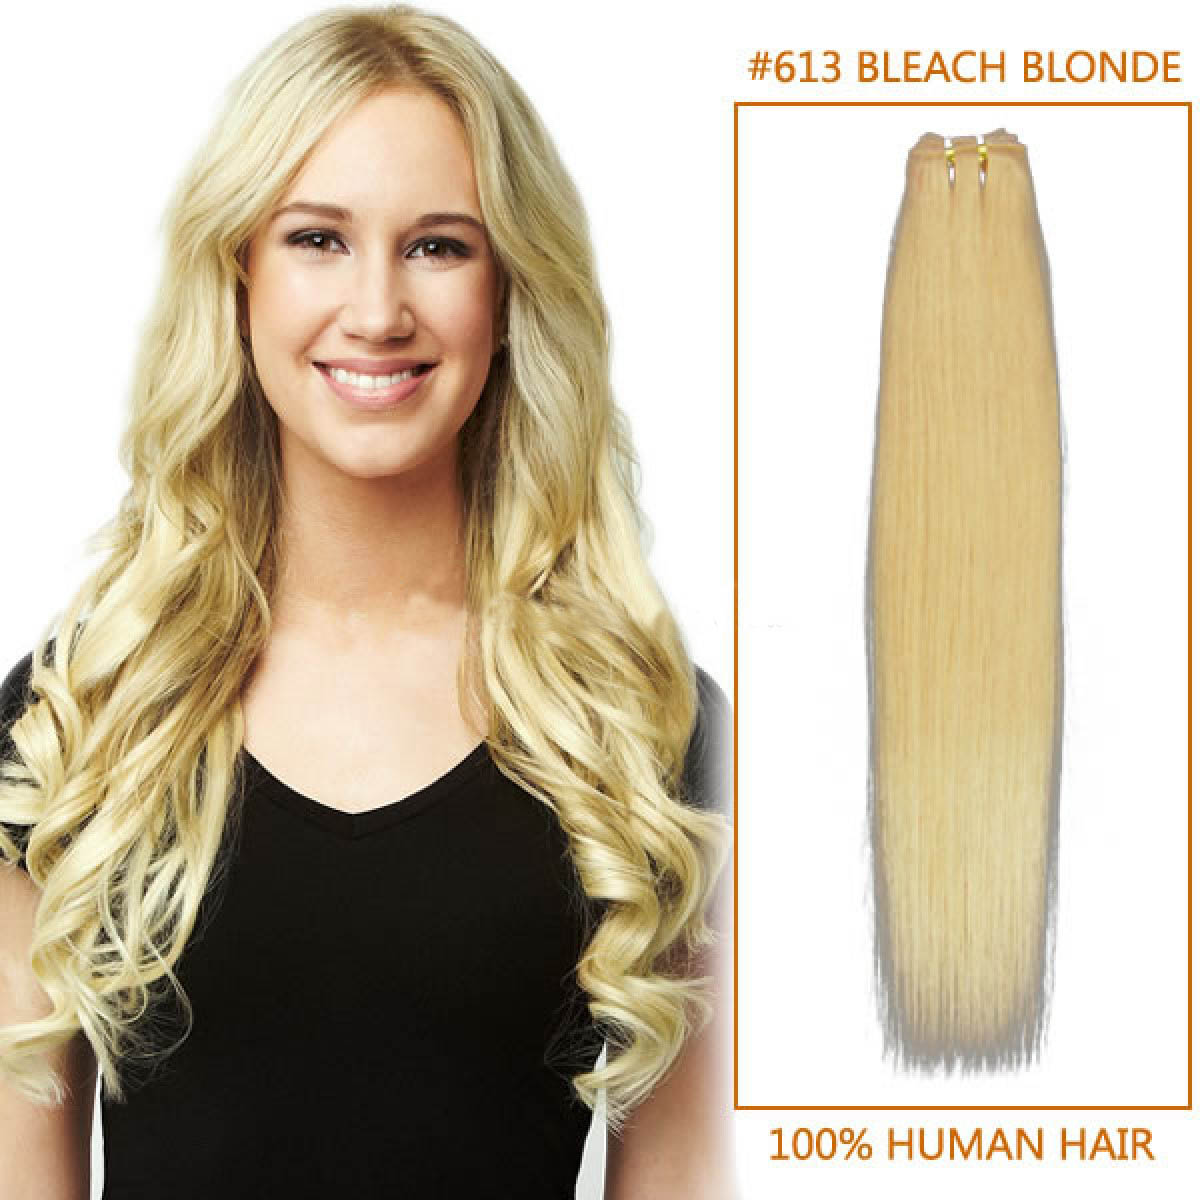 Inch613 bleach blonde straight brazilian virgin hair wefts 14 inch613 bleach blonde straight brazilian virgin hair wefts pmusecretfo Choice Image